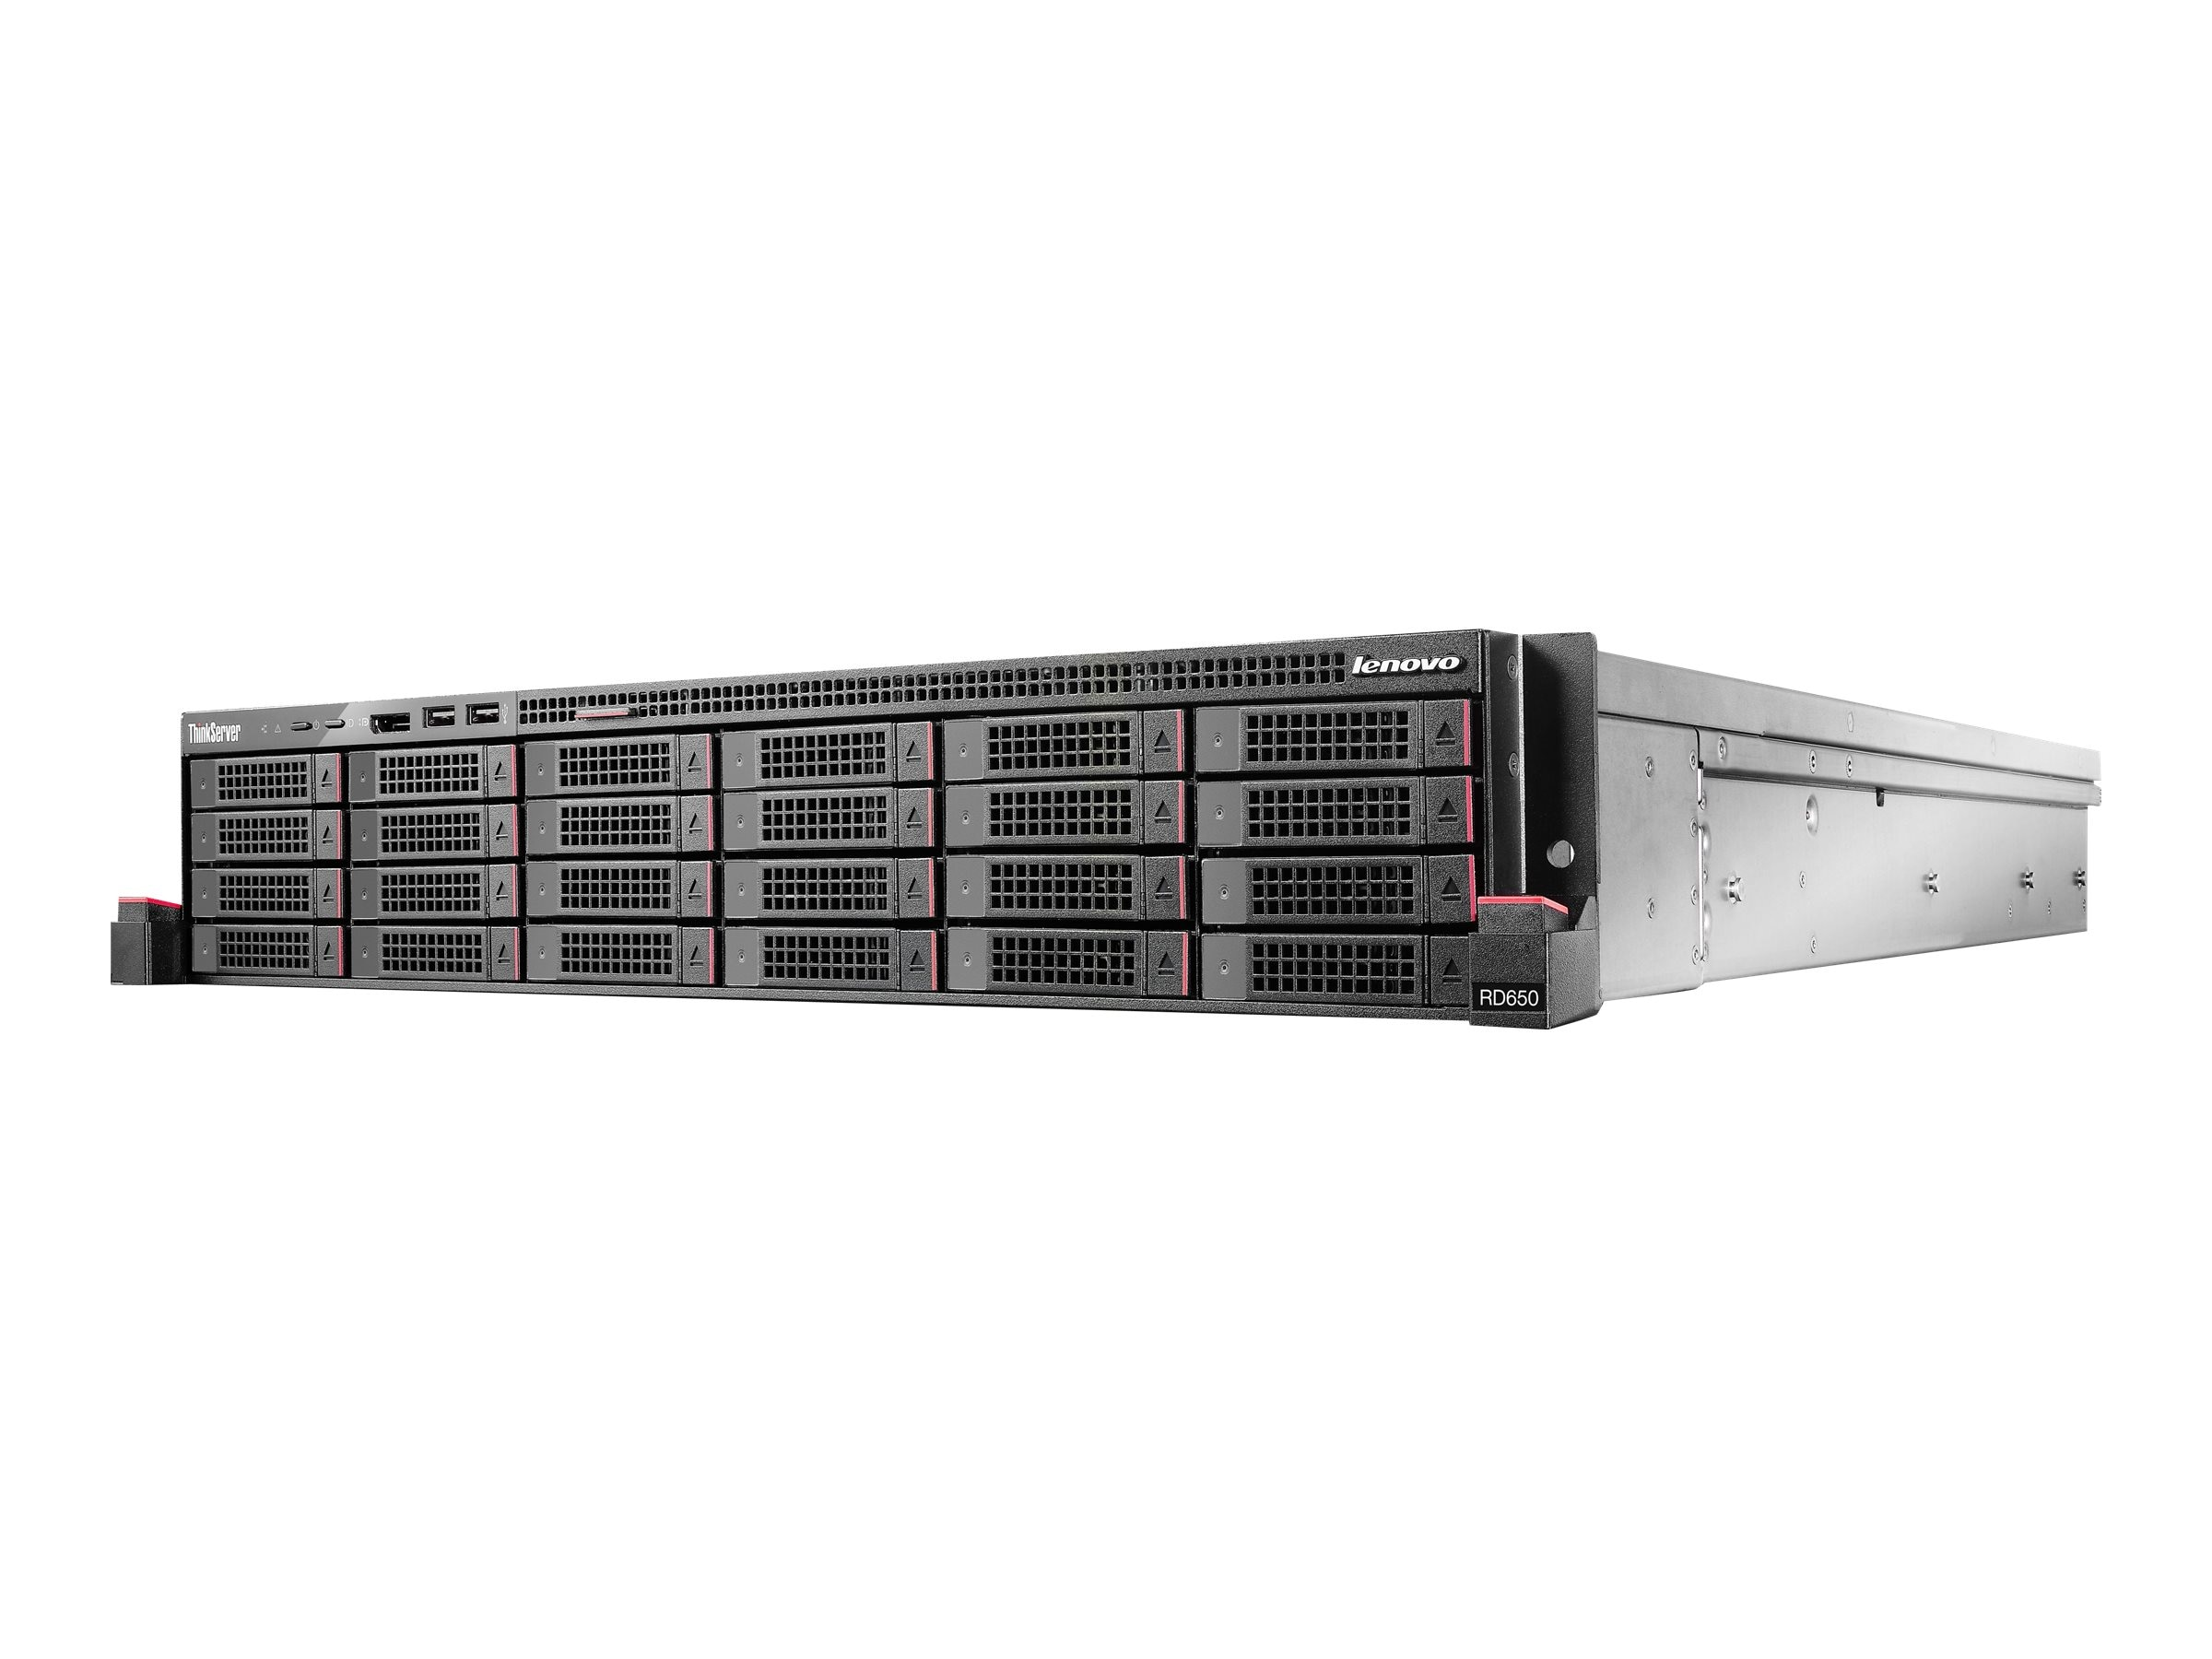 Lenovo ThinkServer RD650 Intel 2.4GHz Xeon, 70D10007UX, 17809762, Servers